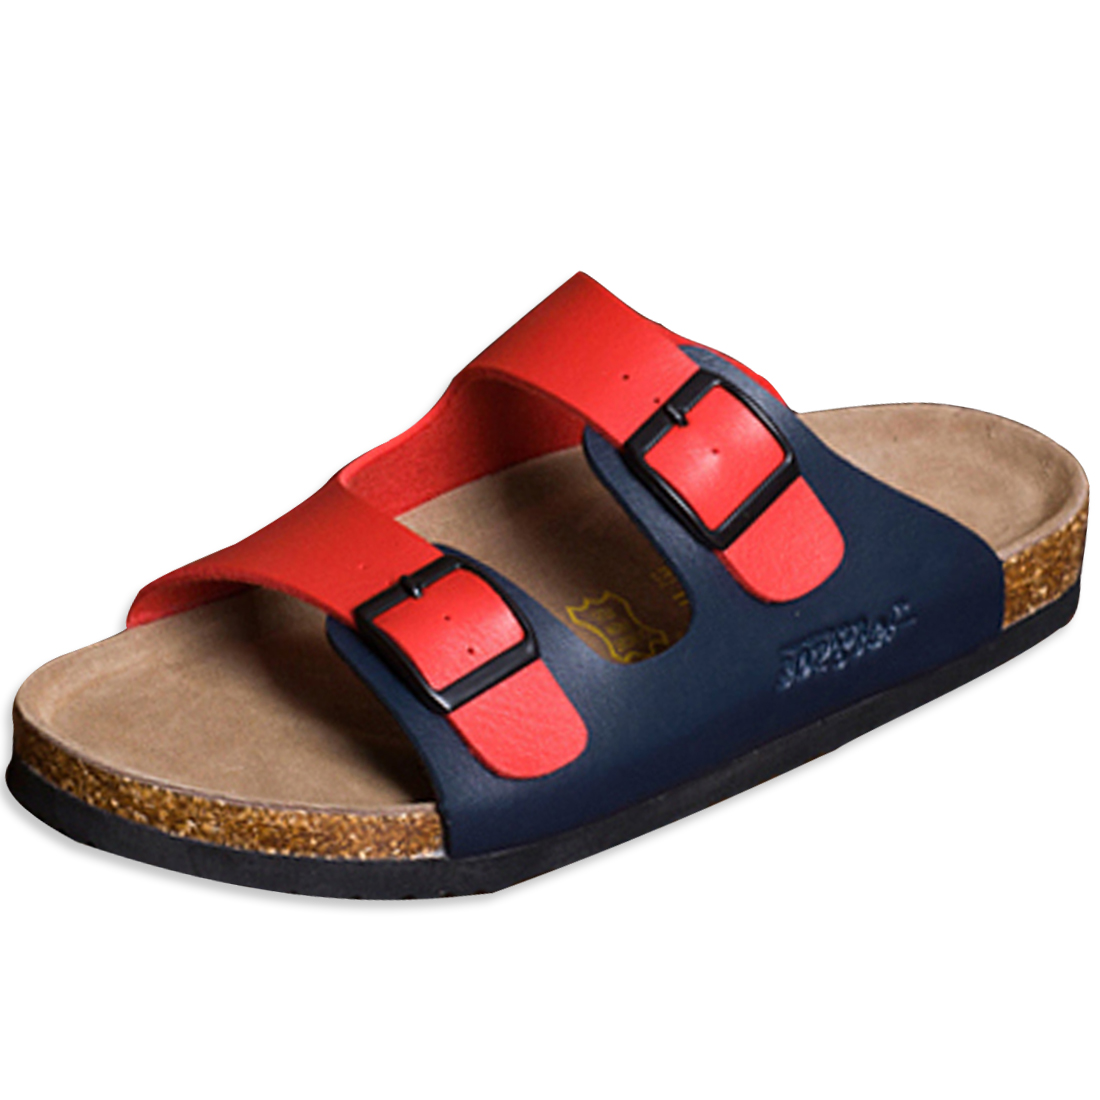 Men Two Buckles Casual Sandals Red Navy Blue US 6